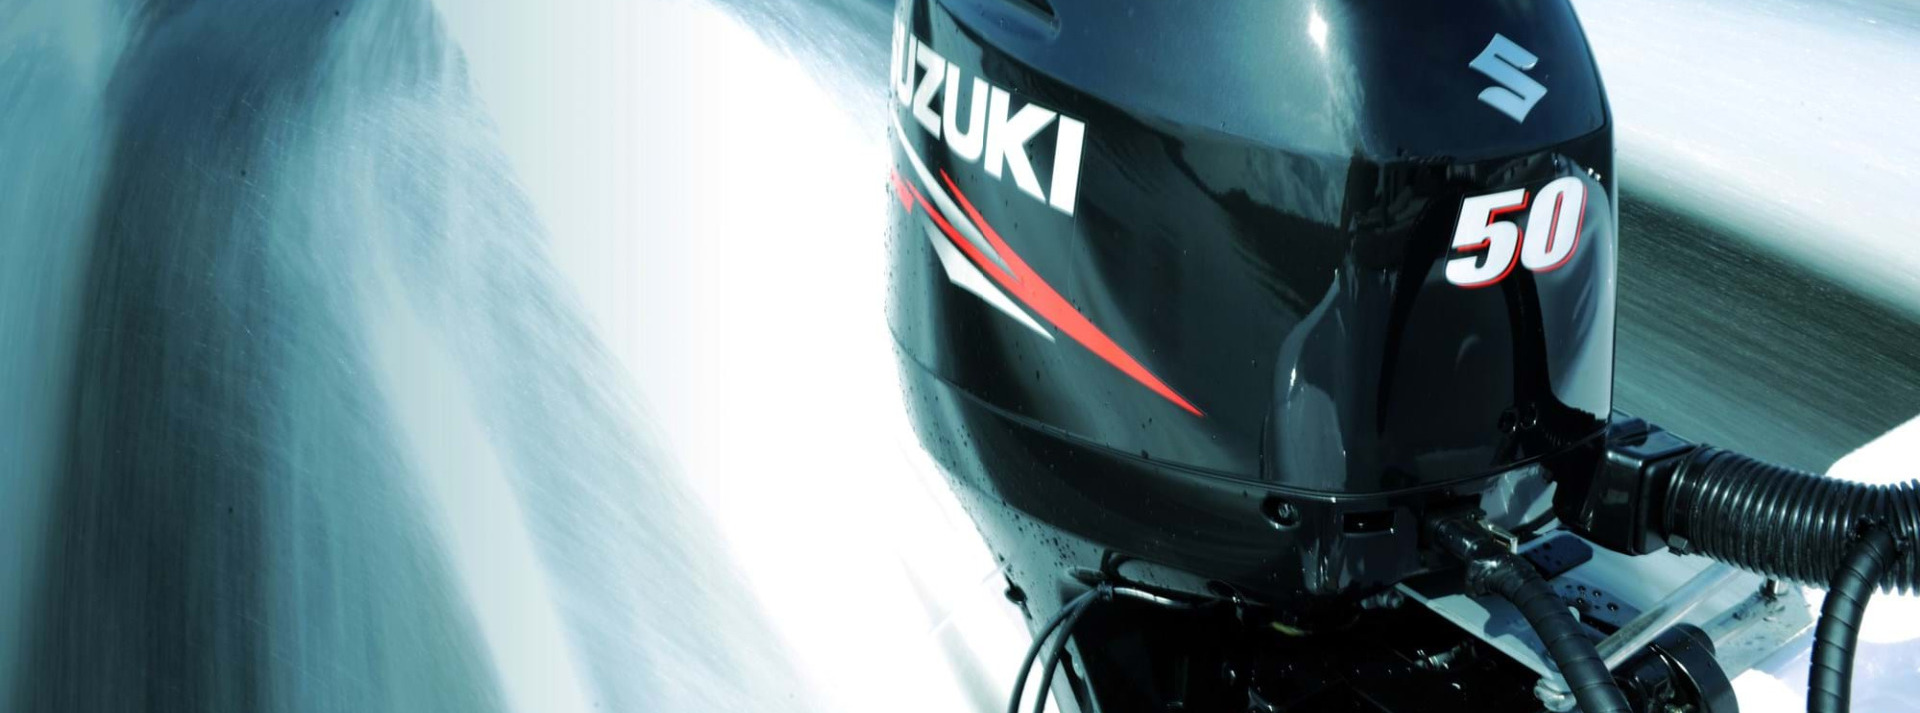 Suzuki Marine Outboard DF200AP Technology from Winsor Marine